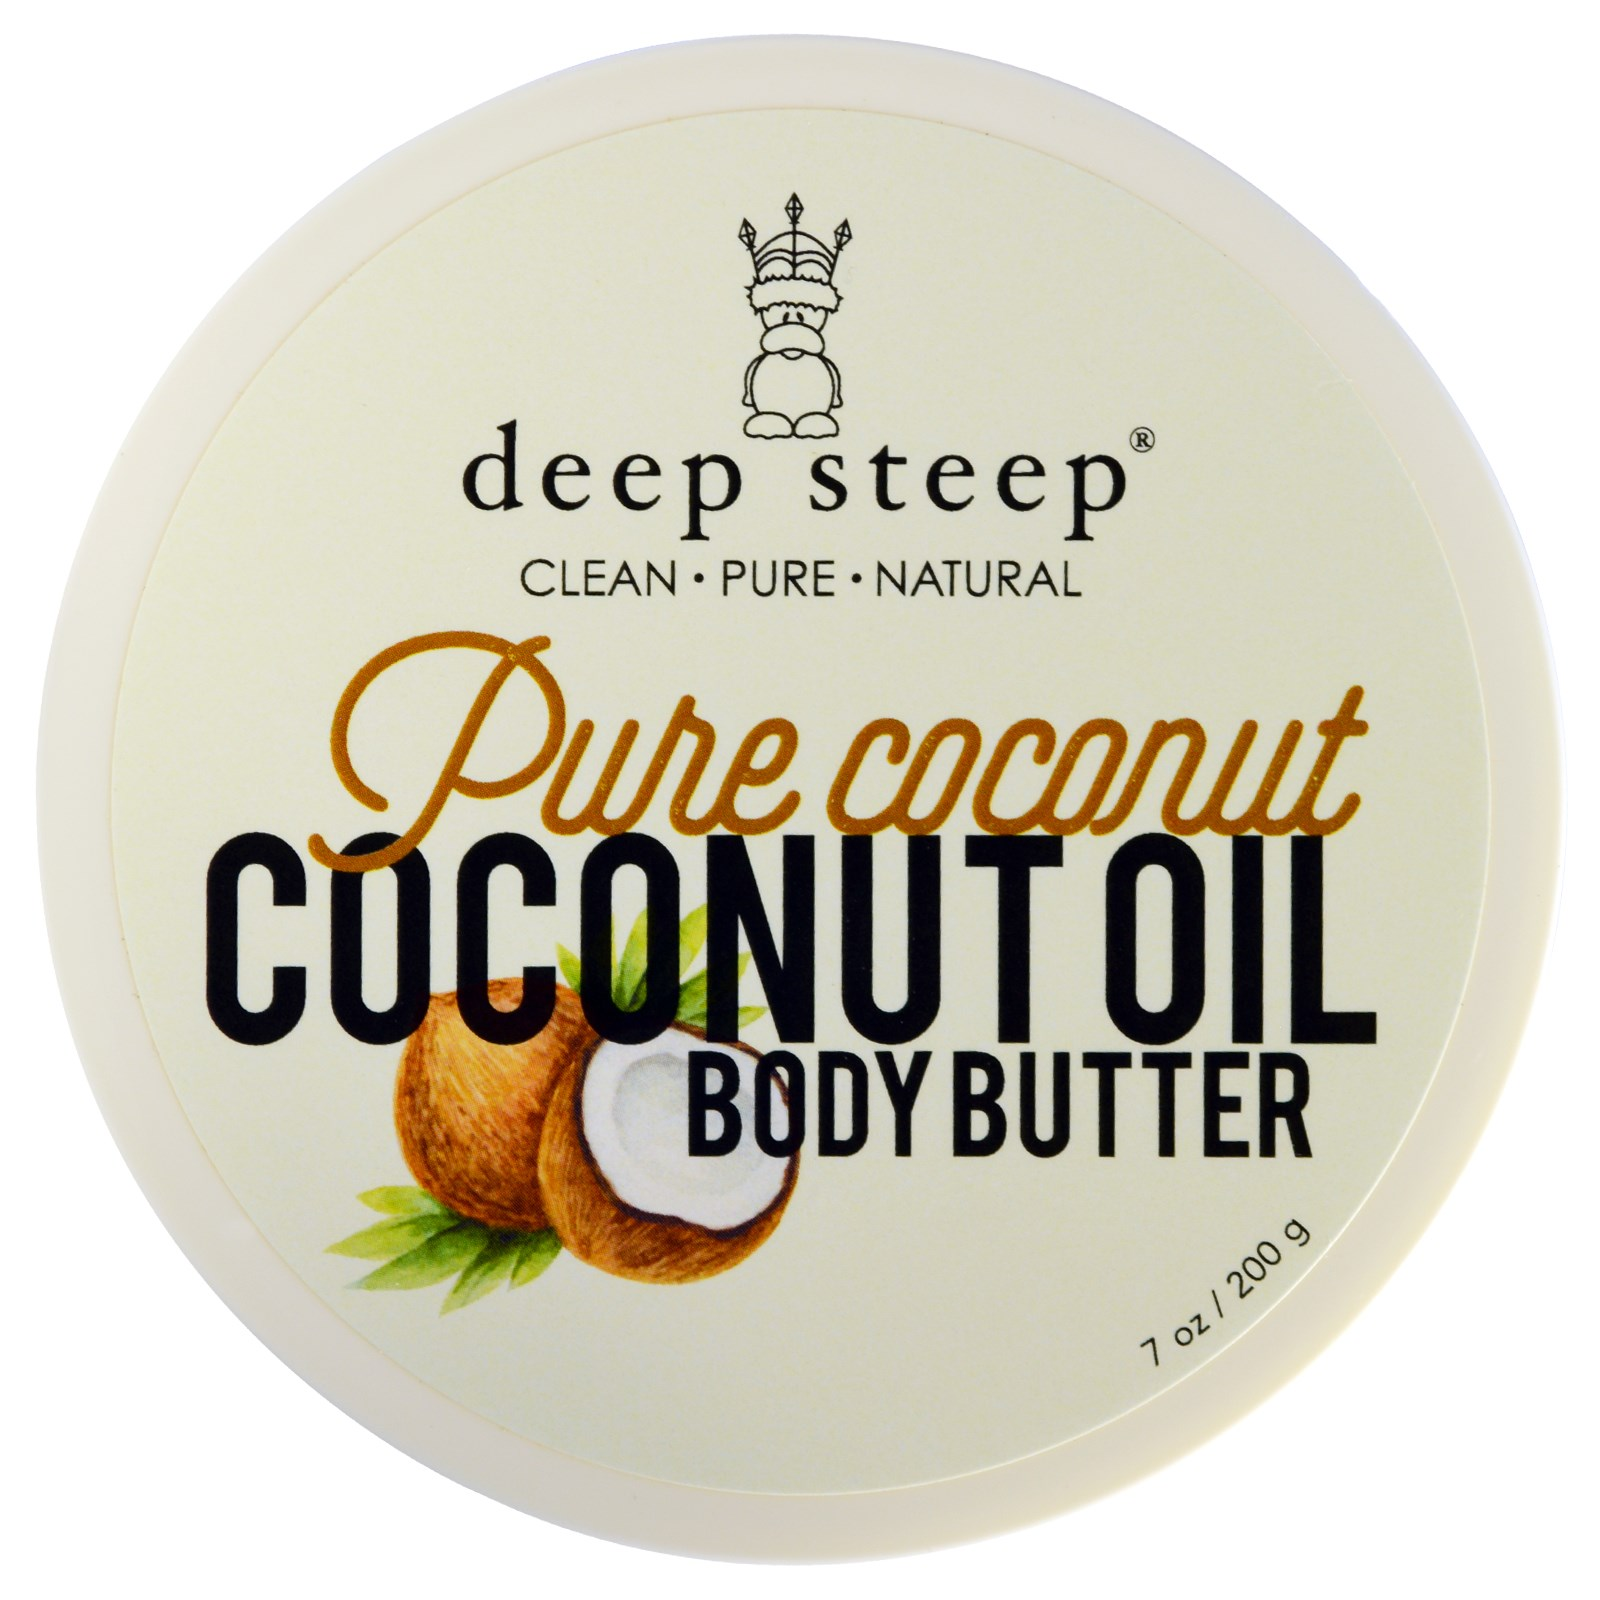 deep steep pure coconut coconut oil body butter 7 oz 200 g